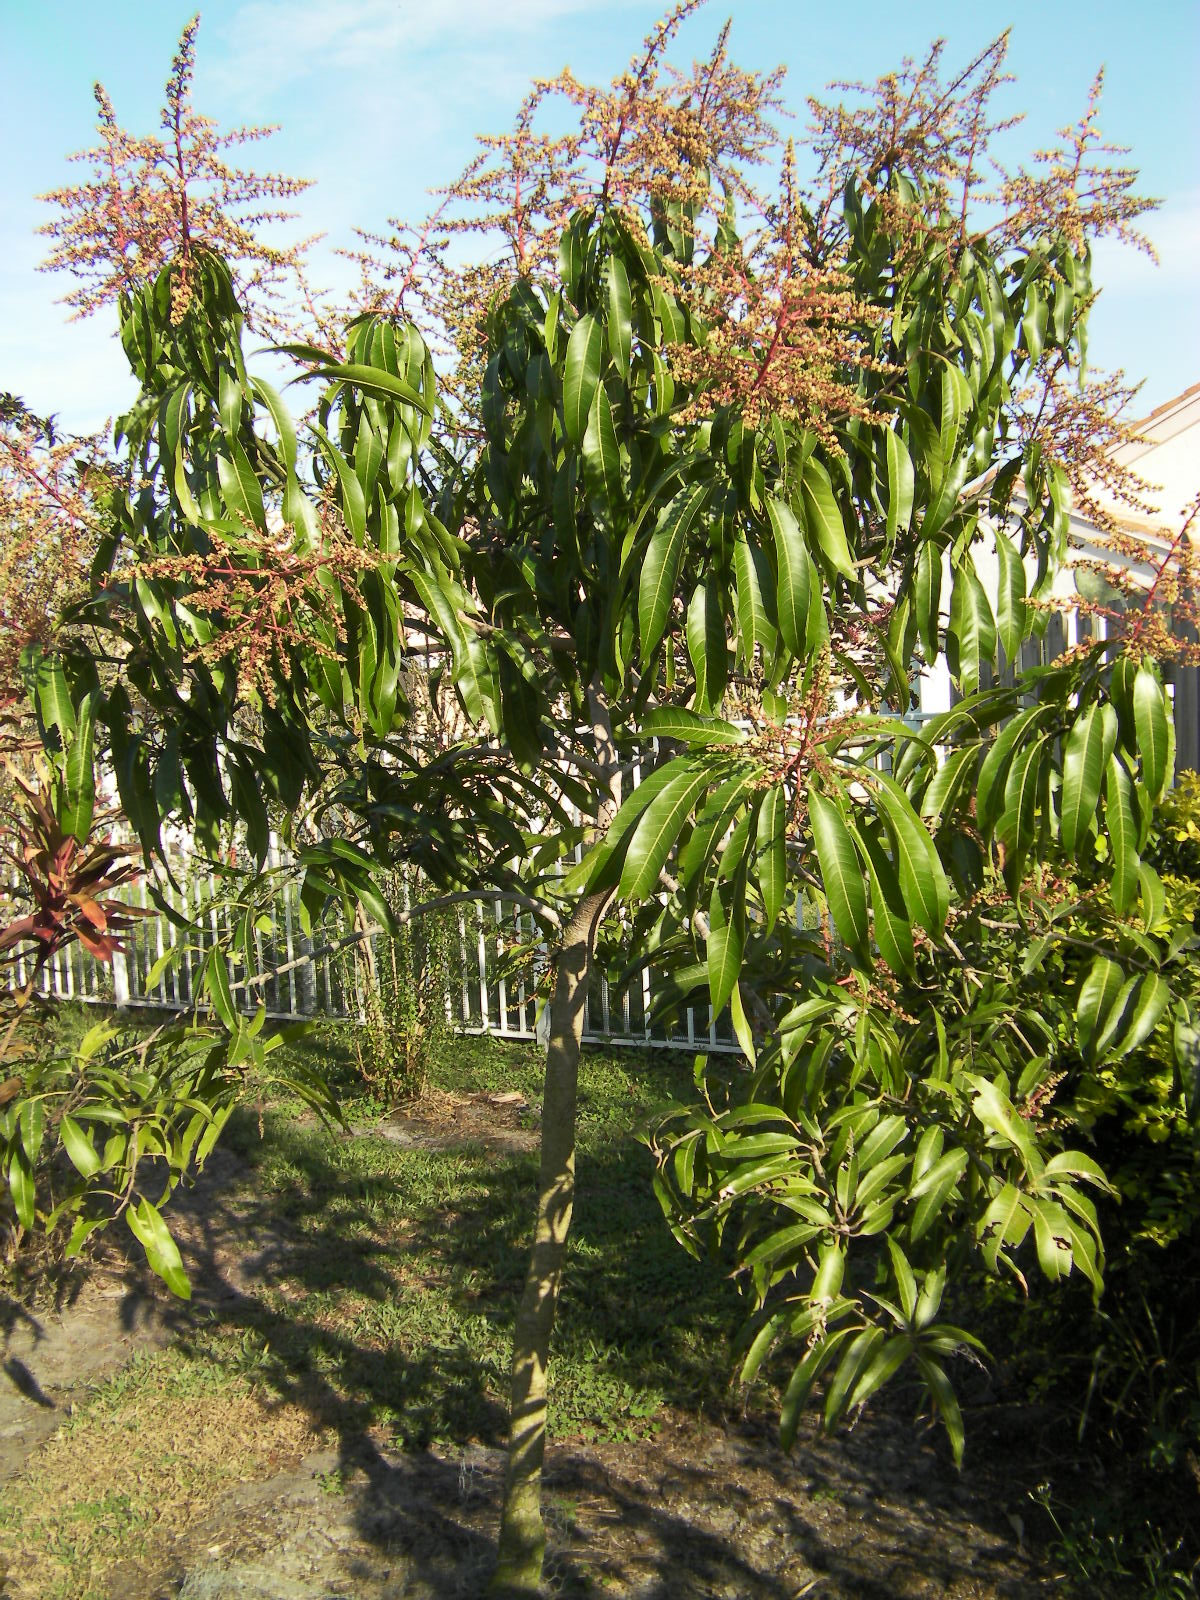 Julie Dwarf Mango Trees http://thebudgetgardener.blogspot.com/2011/02/mango-trees-in-bloom-everywhere.html